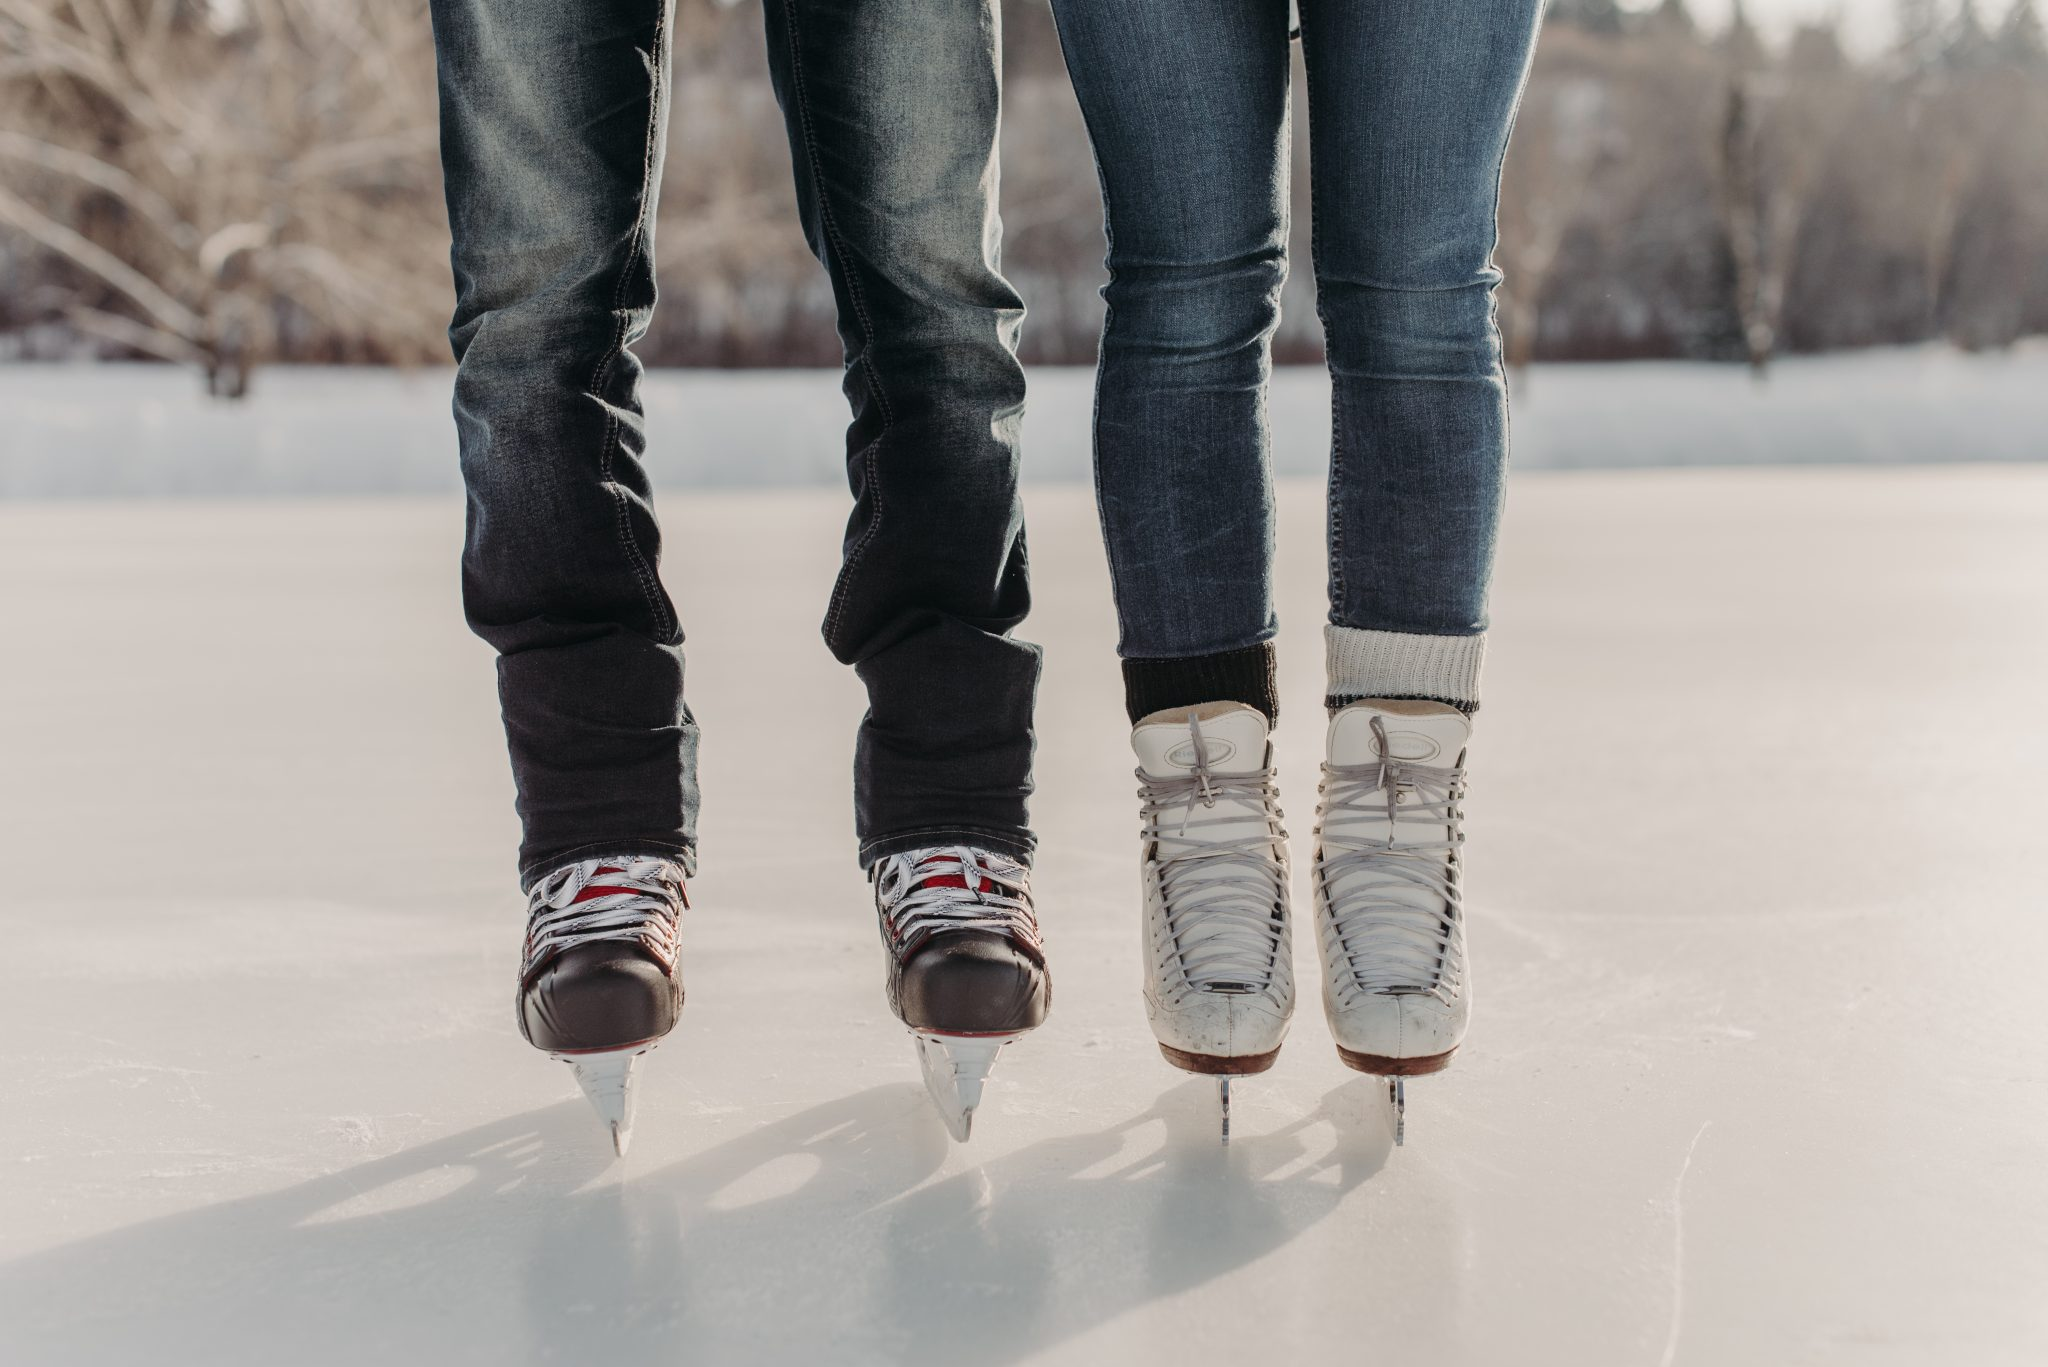 Skating Engagement Session in Edmonton Alberta